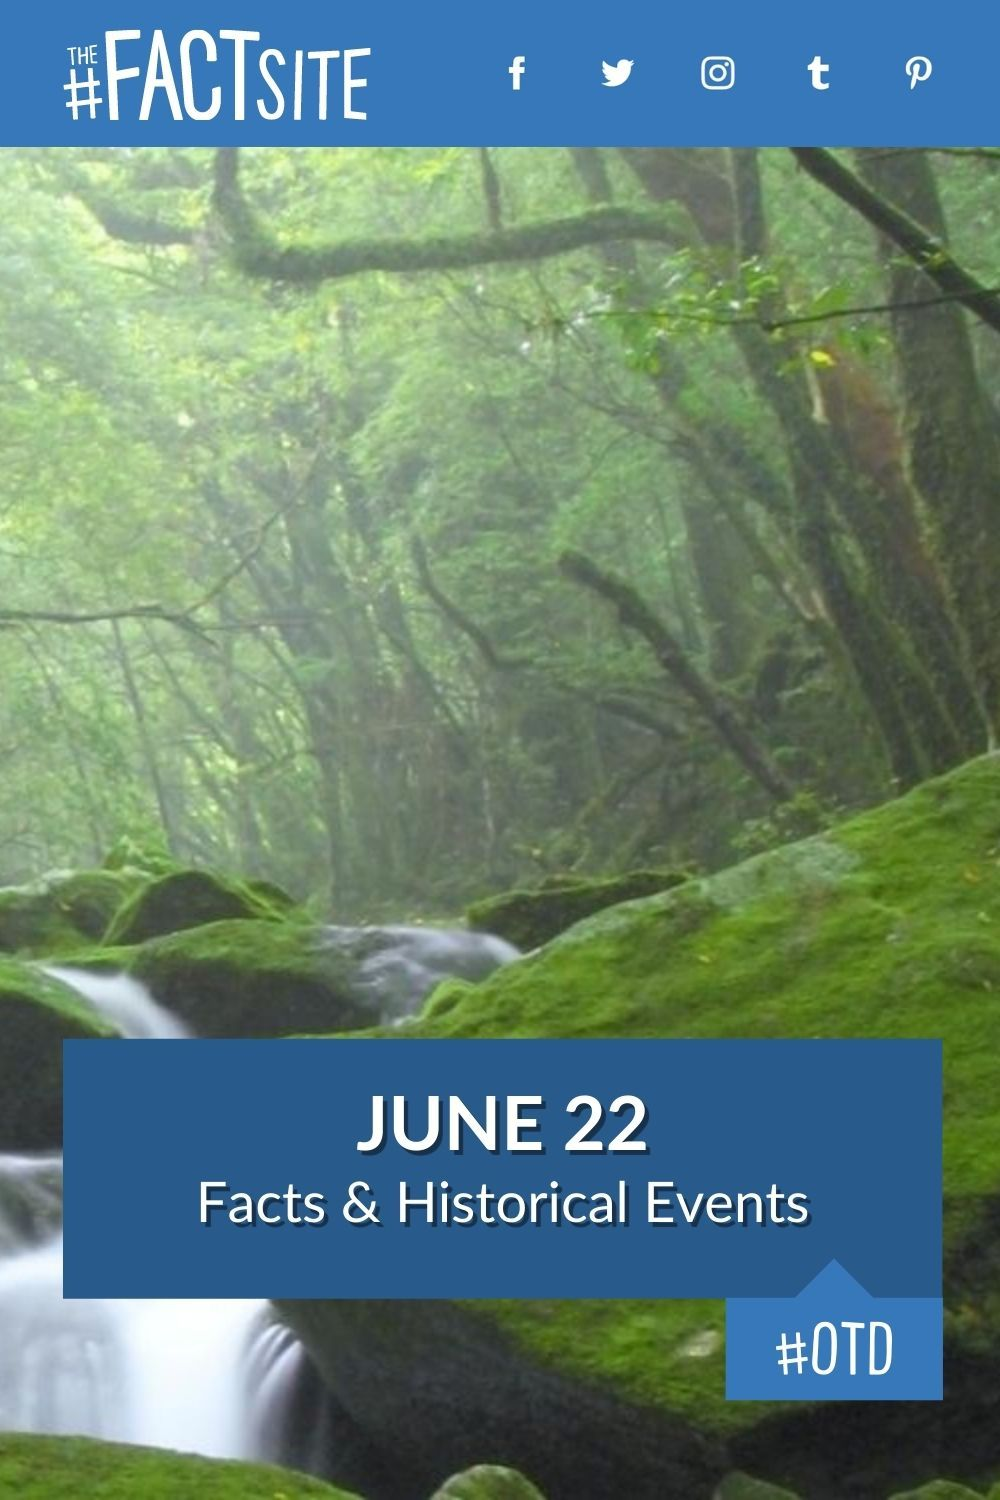 Facts & Historic Events That Happened on June 22